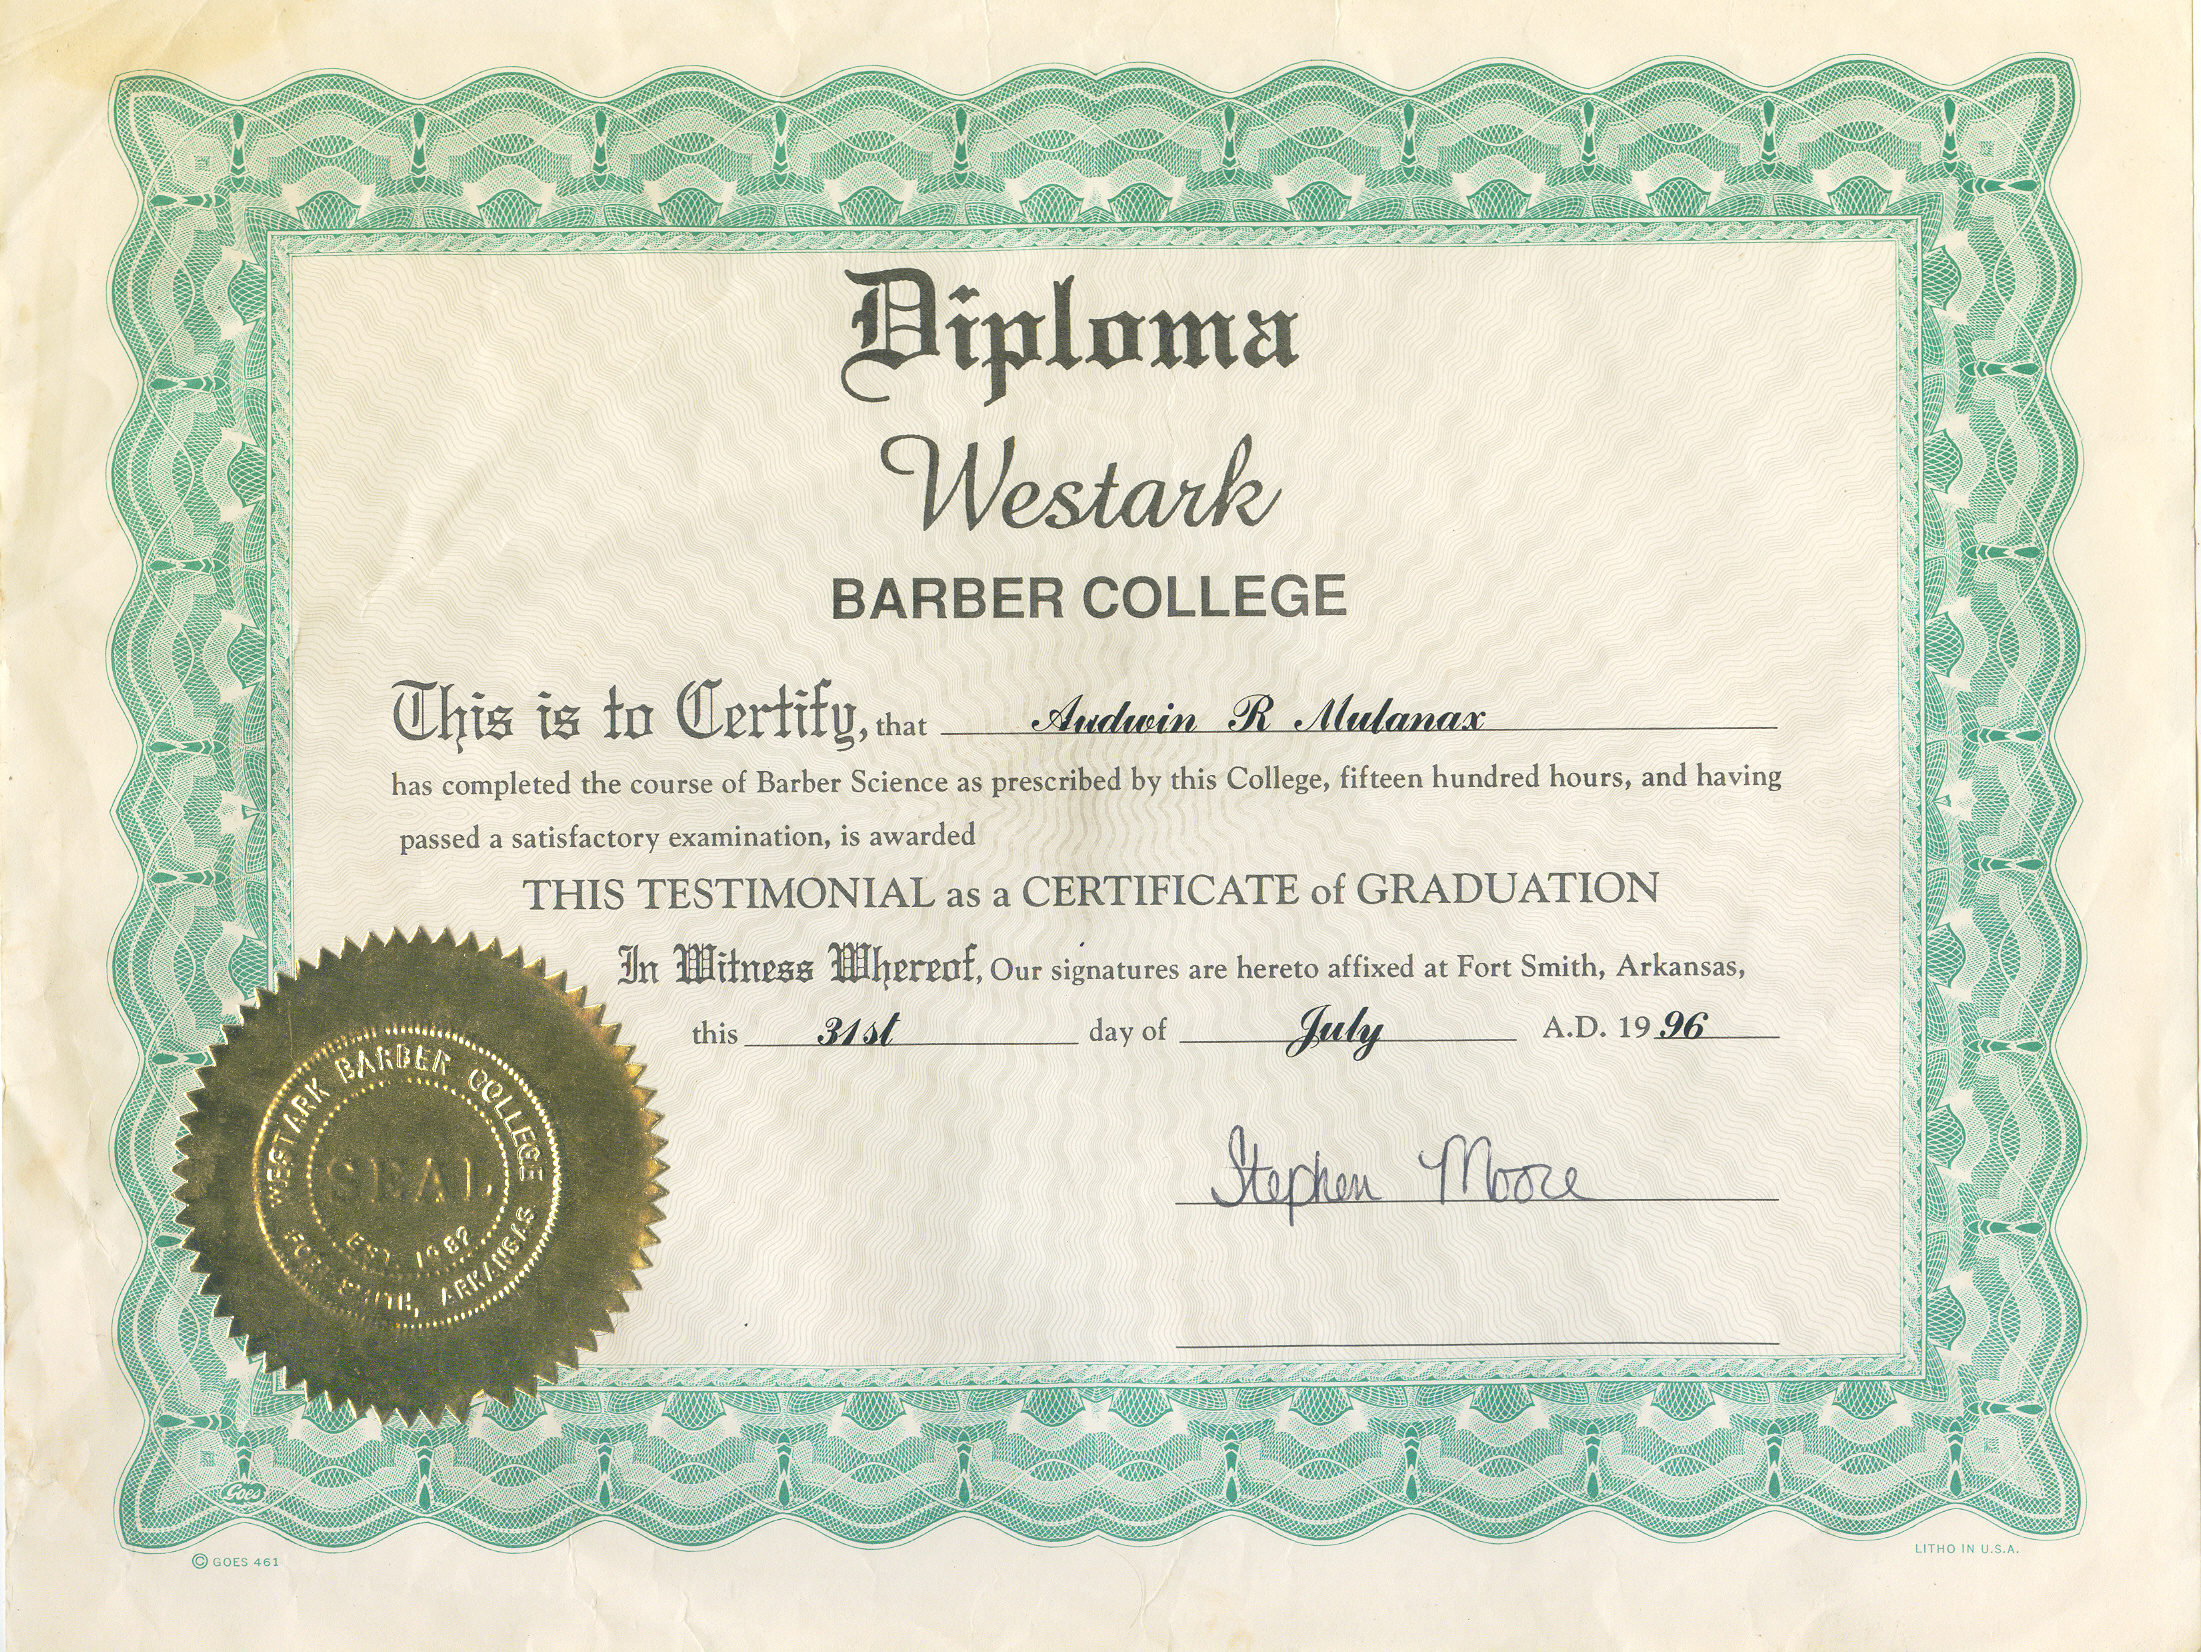 Barber License : AudiesBarberShop.com